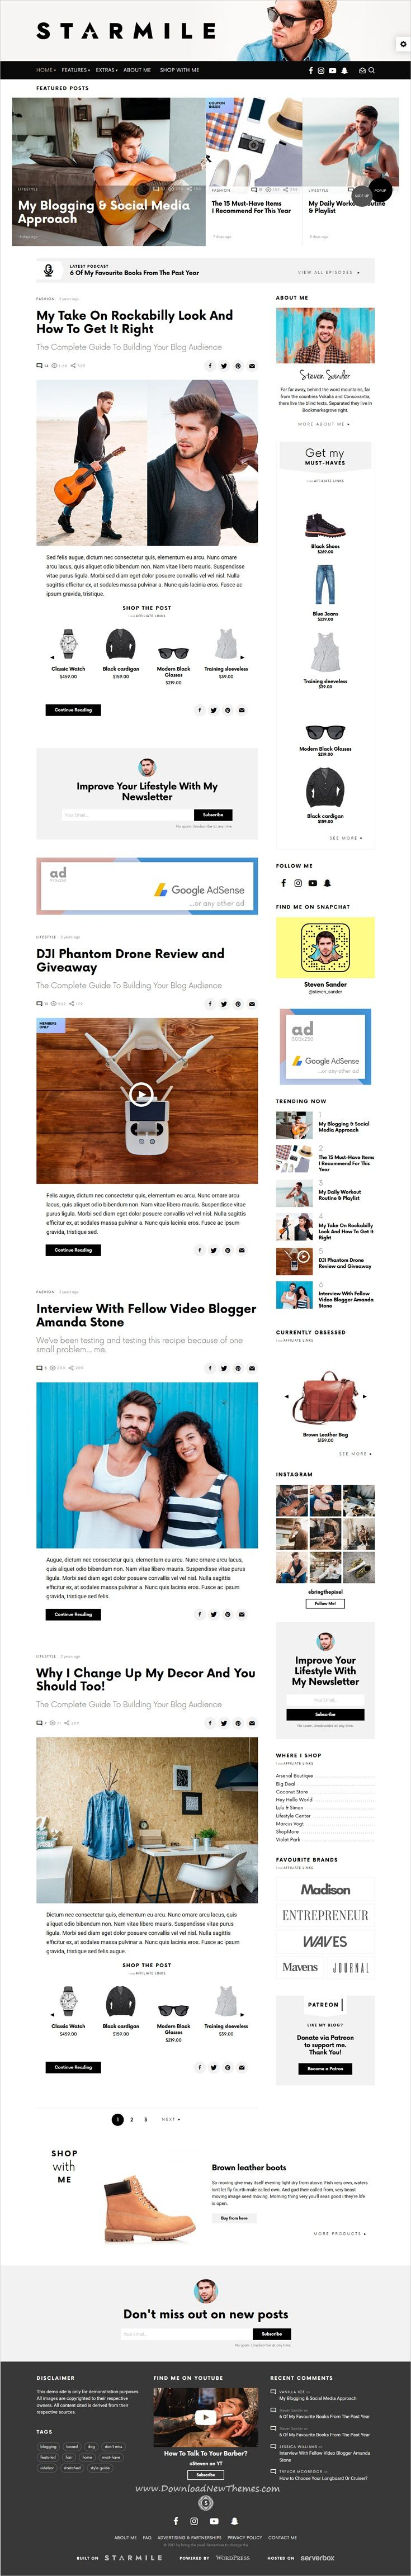 AeroMag - News & Magazine Responsive Blogger Template